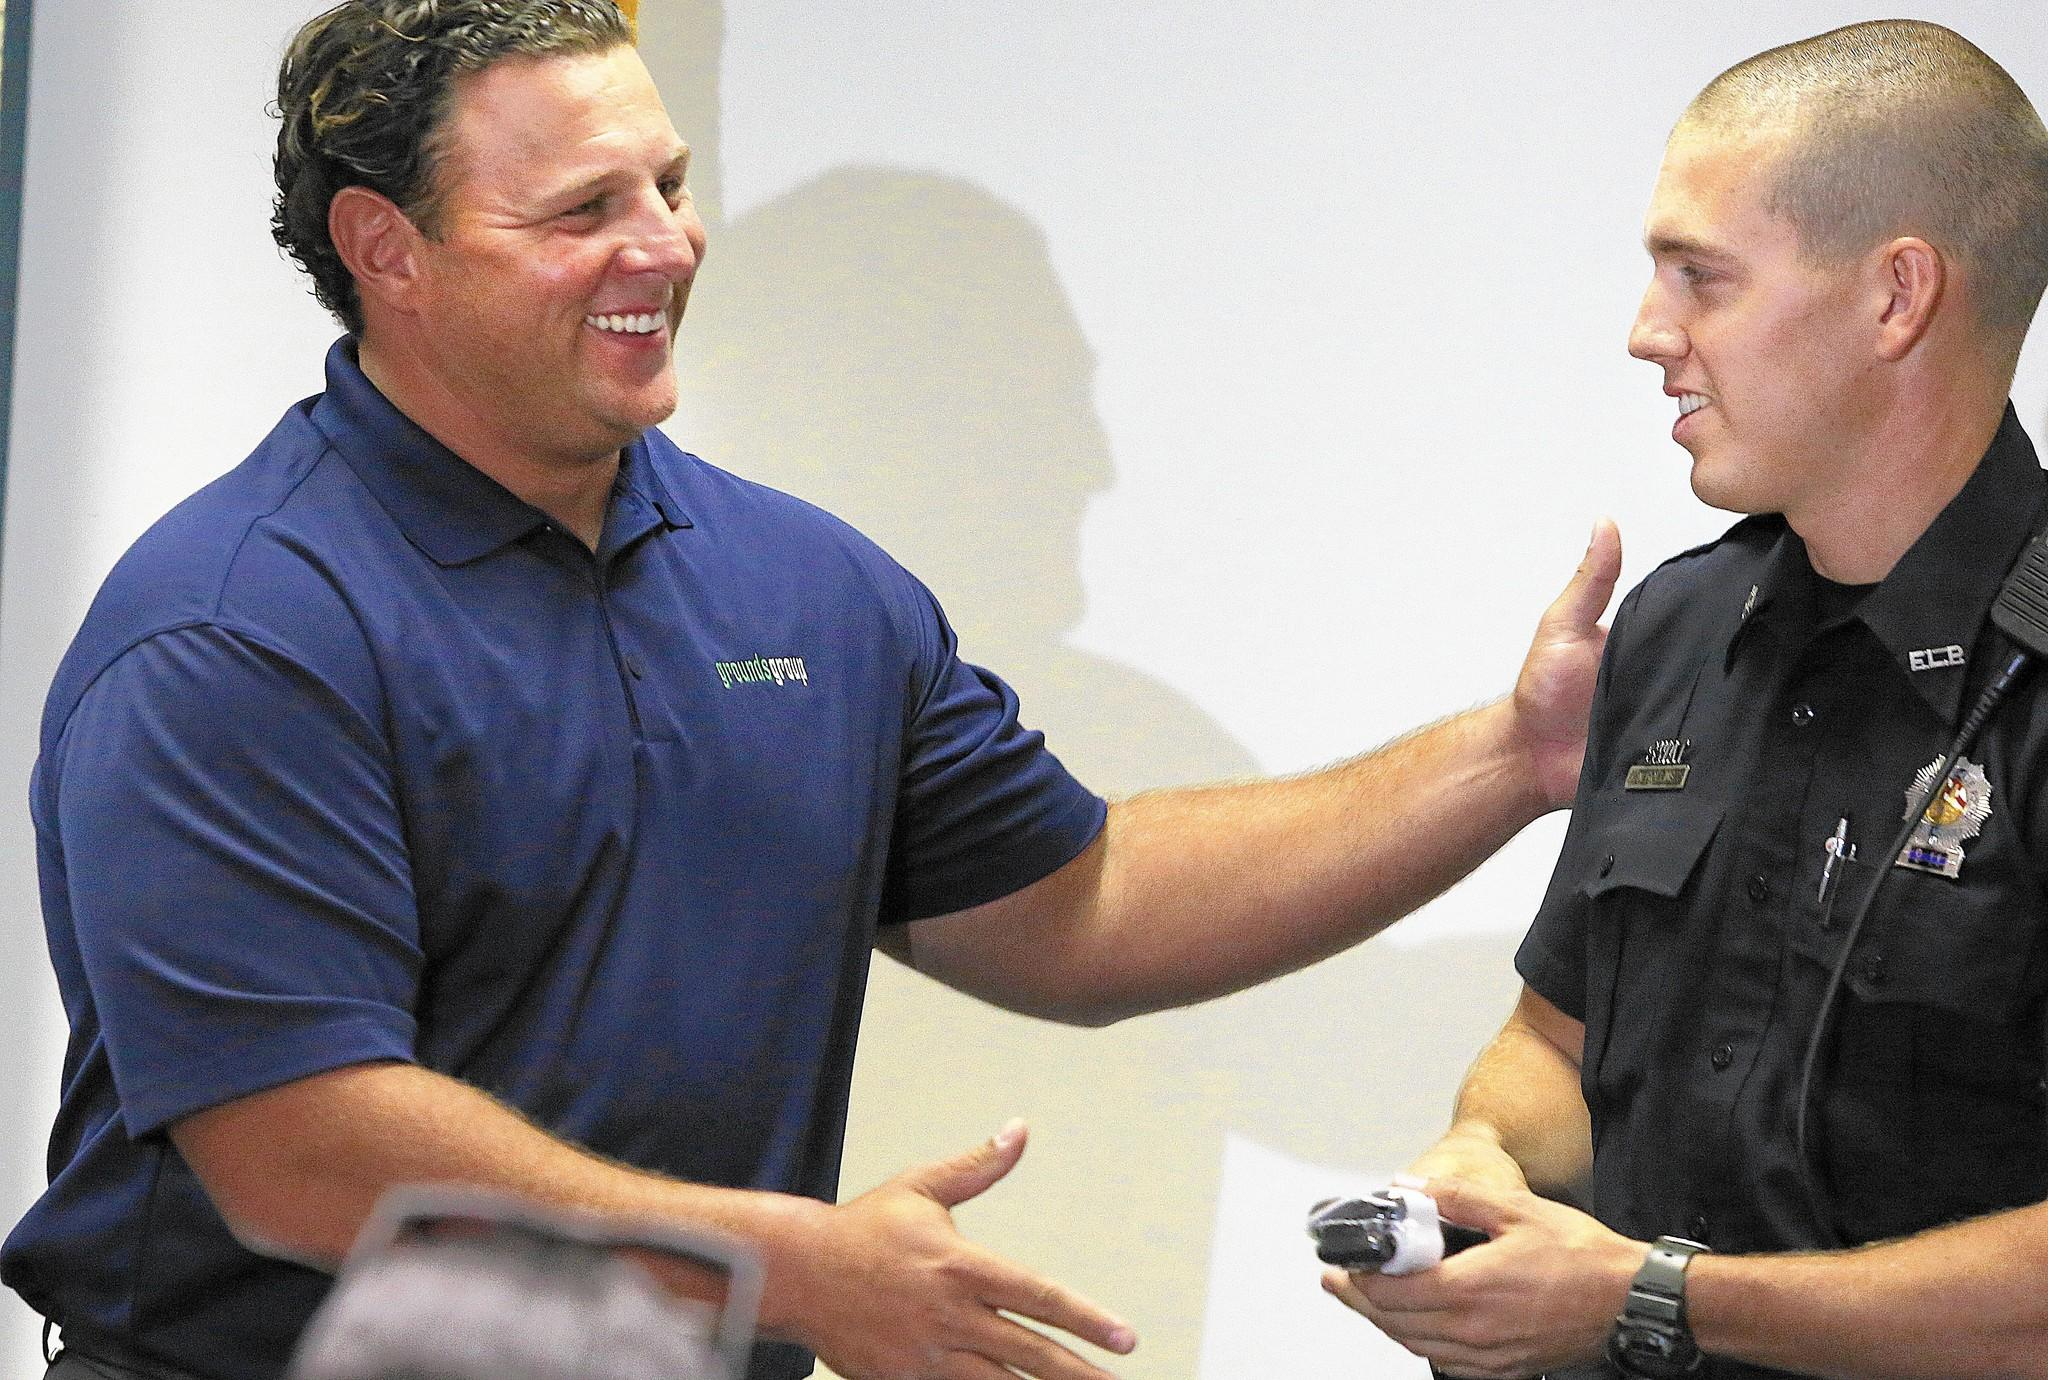 Davie Resident, Jeremy Wehby, left, thanks Fort Lauderdale police officer Nick Rollins for saving his wife from potentially bleeding to death after an accident at Vibe nightclub.